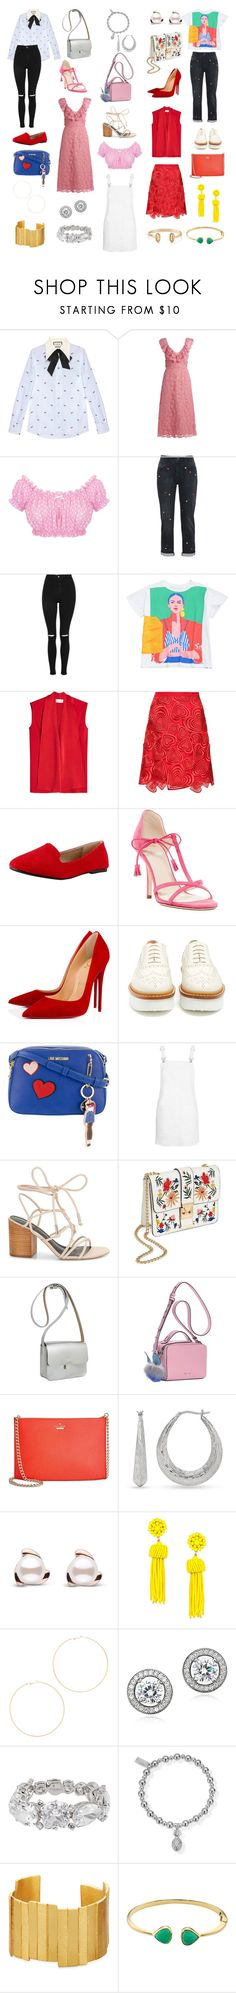 """Hearts"" by kathrina1yana2jemma3cloe4 ❤ liked on Polyvore featuring Gucci, Miu Miu, STELLA McCARTNEY, Topshop, Victoria Beckham, Christopher Kane, Frances Valentine, Christian Louboutin, Tod's and Love Moschino"